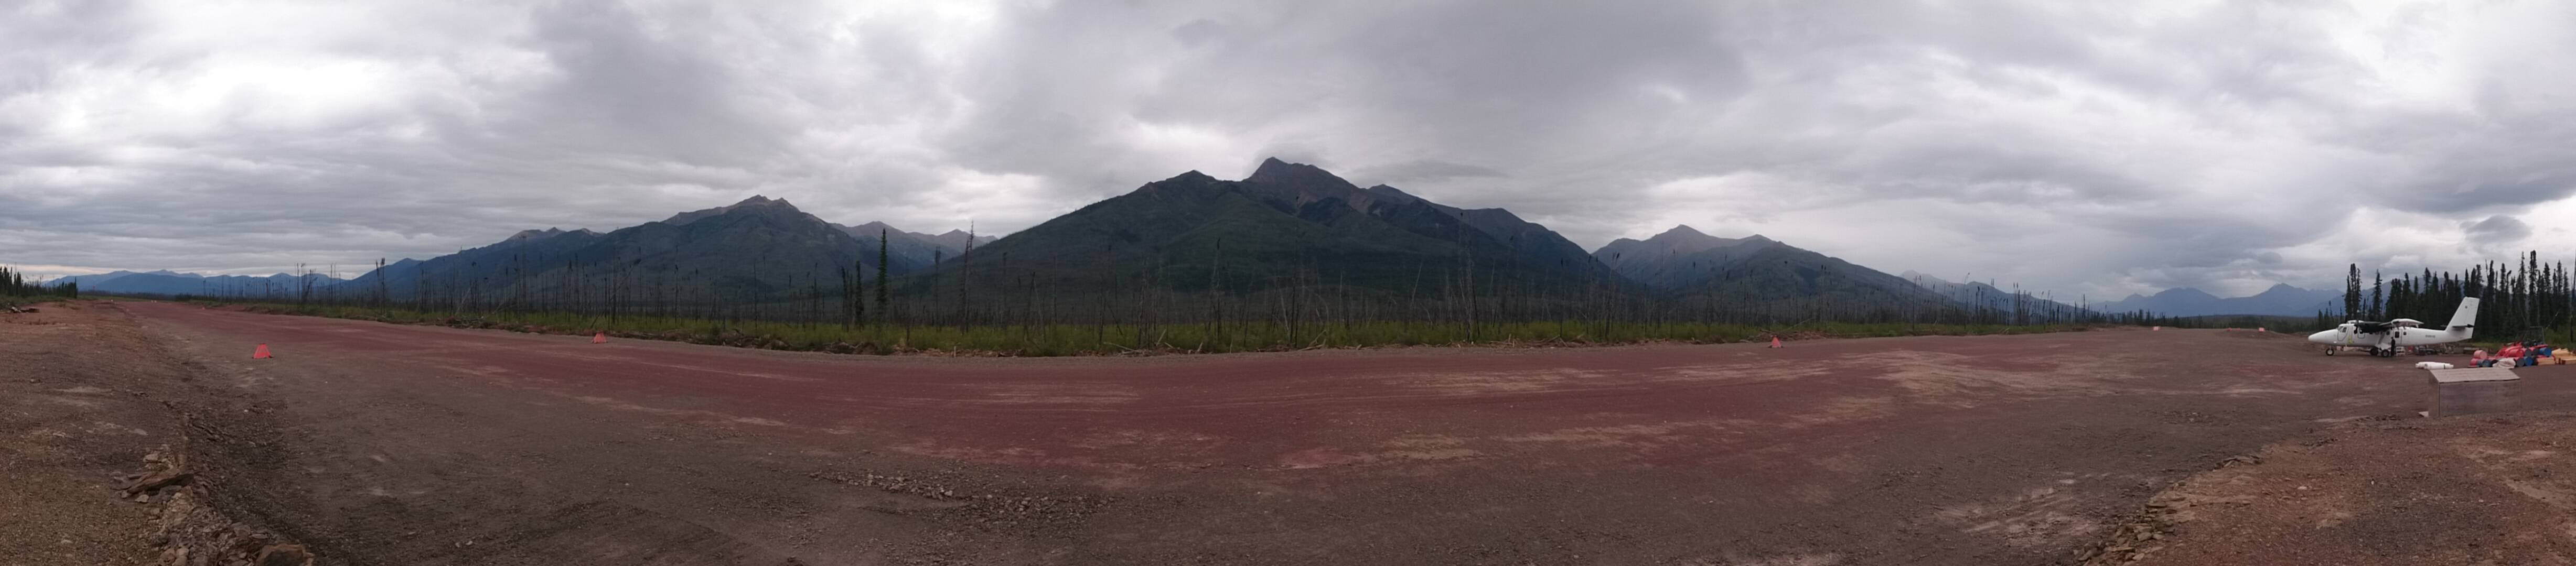 ATAC Resources 3000' Stewart Airstrip panorama. Background: The mountain valley to the left of the largest peak is the Nadaleen base camp for accessing the Osiris & Anubis Cluster.